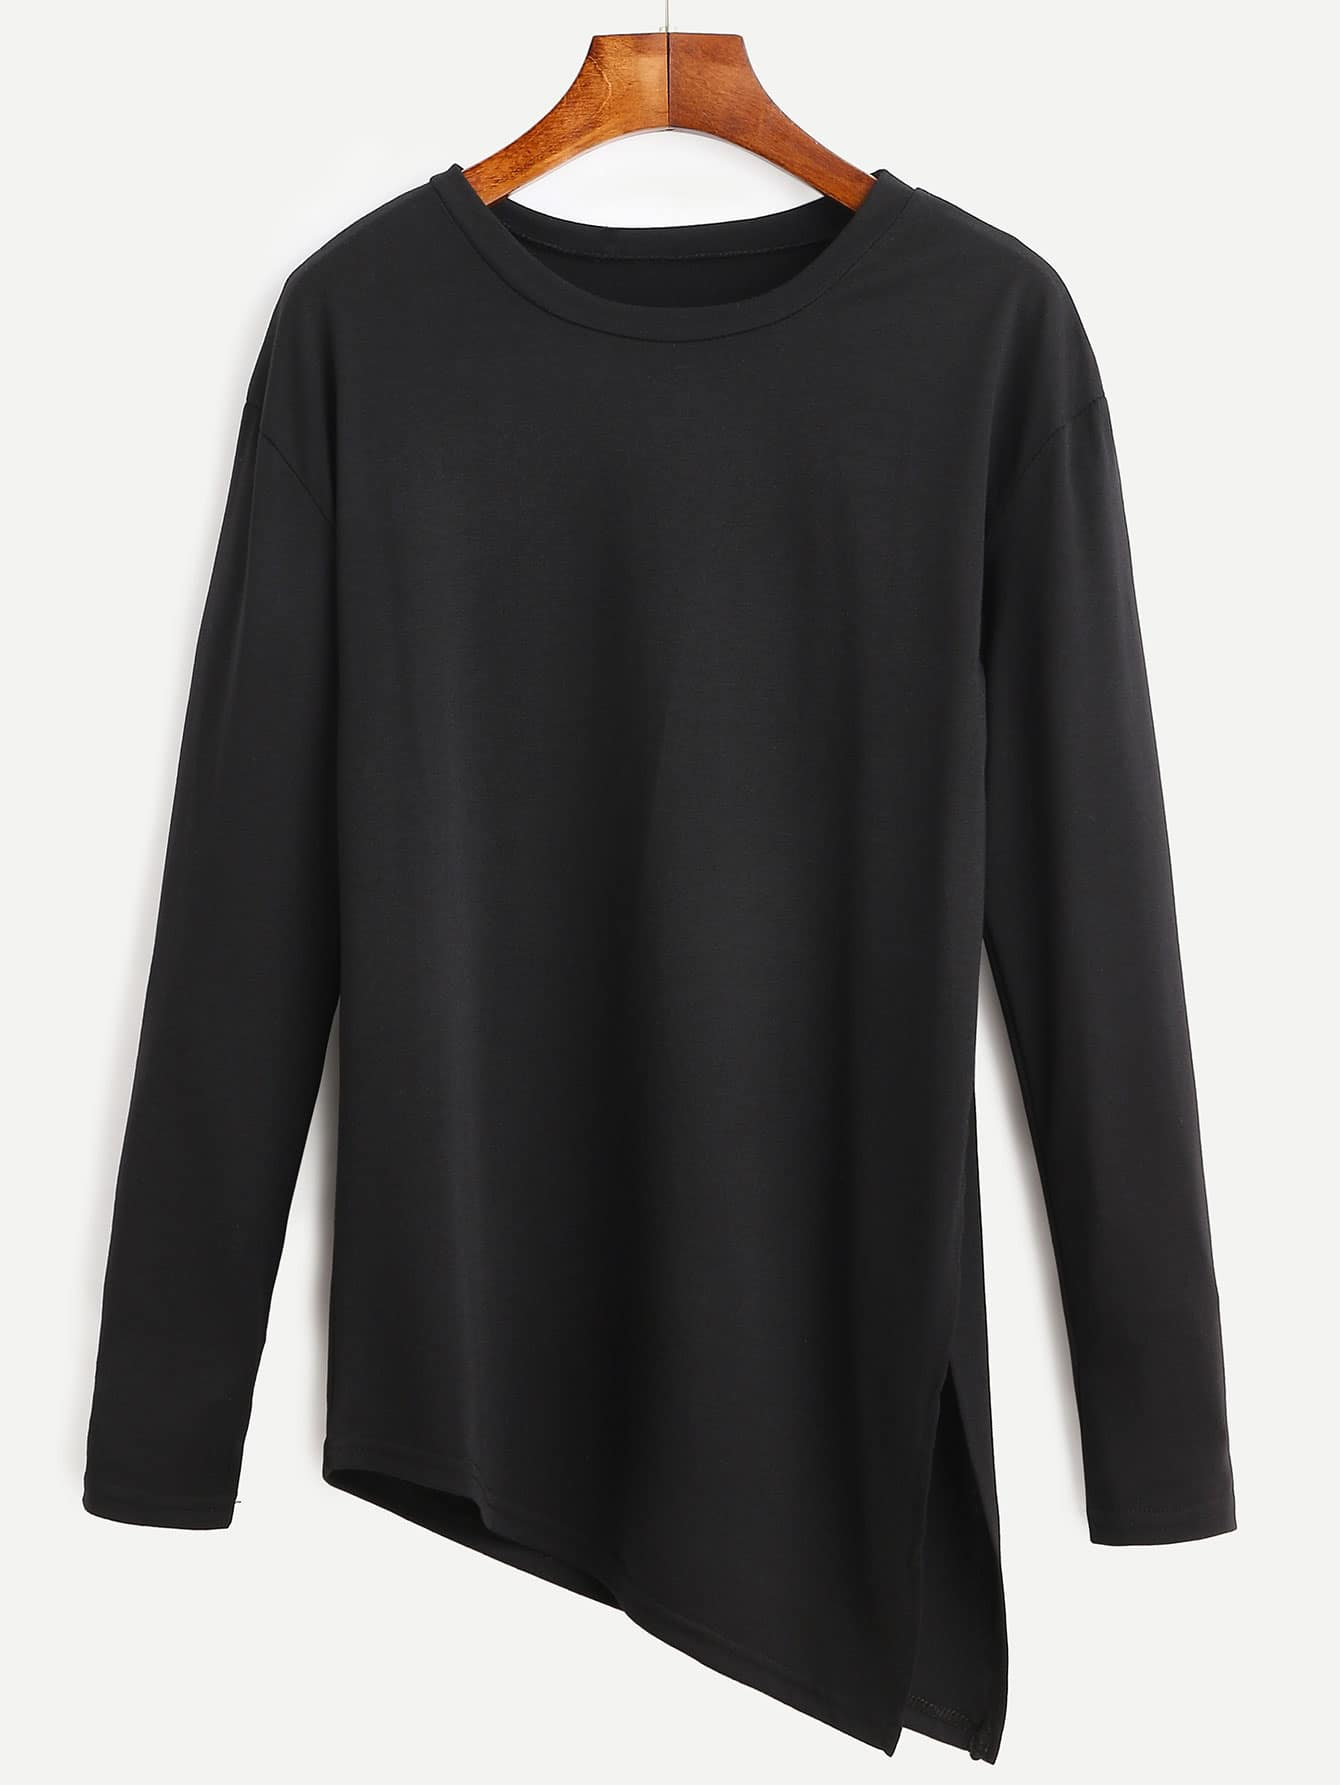 Black Asymmetrical Slit Side Long Sleeve T-shirt RTSH160812101